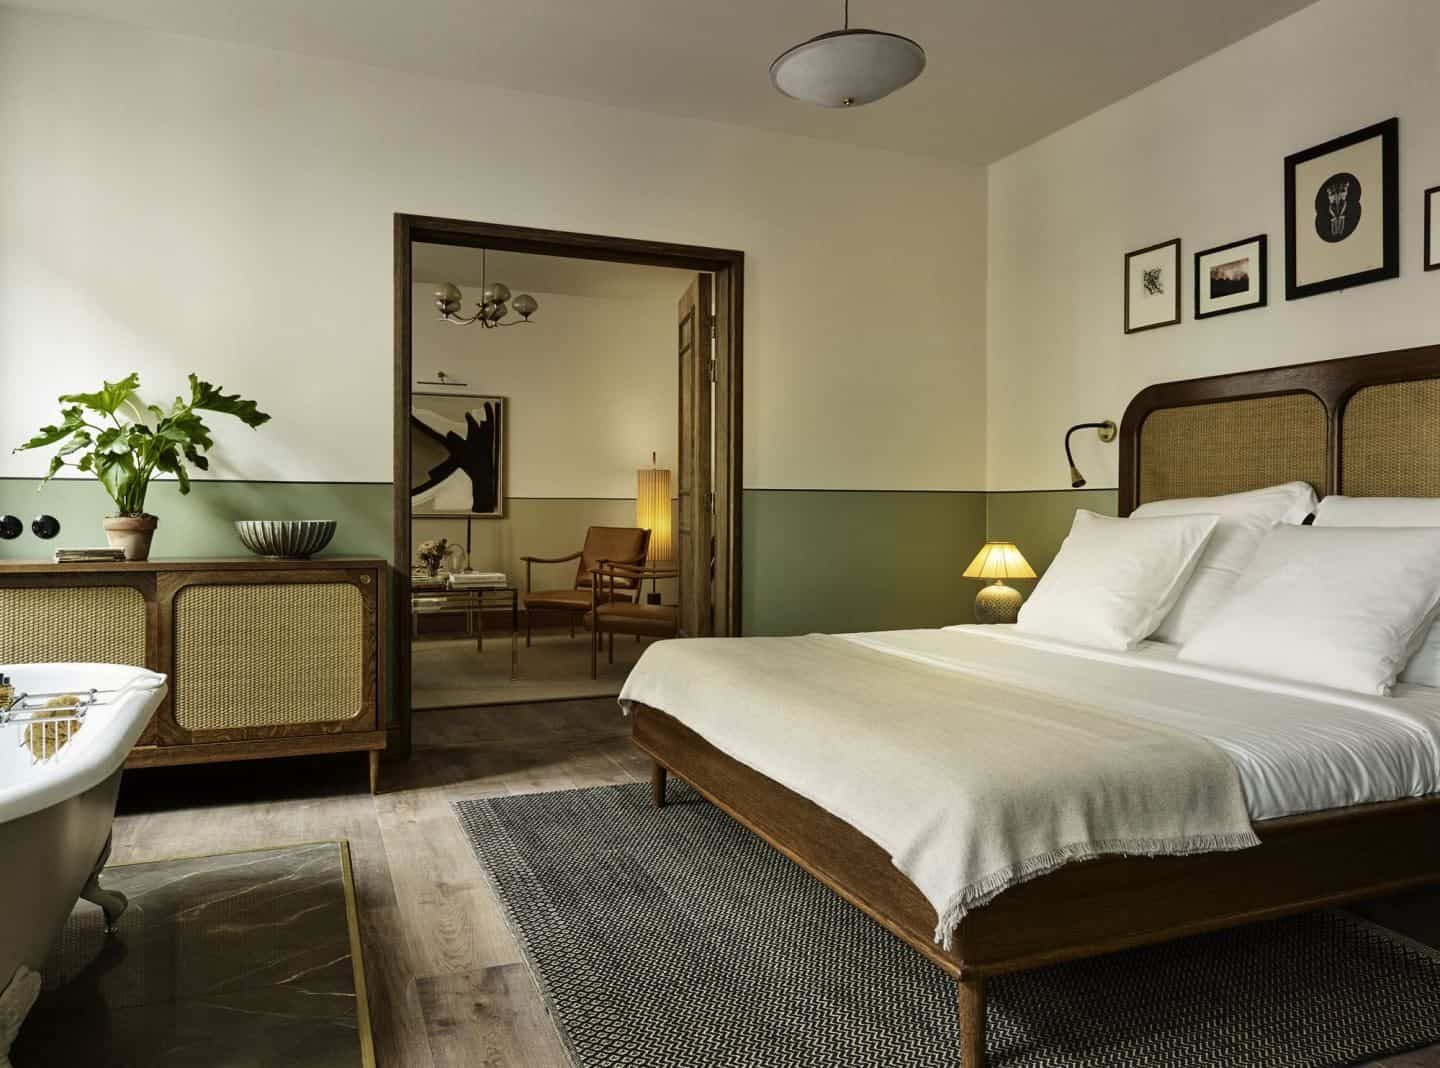 Sander Hotel, a design hotel in copenhagen. The bedrooms have a colonial influence and feature muted earthy colours and natural material